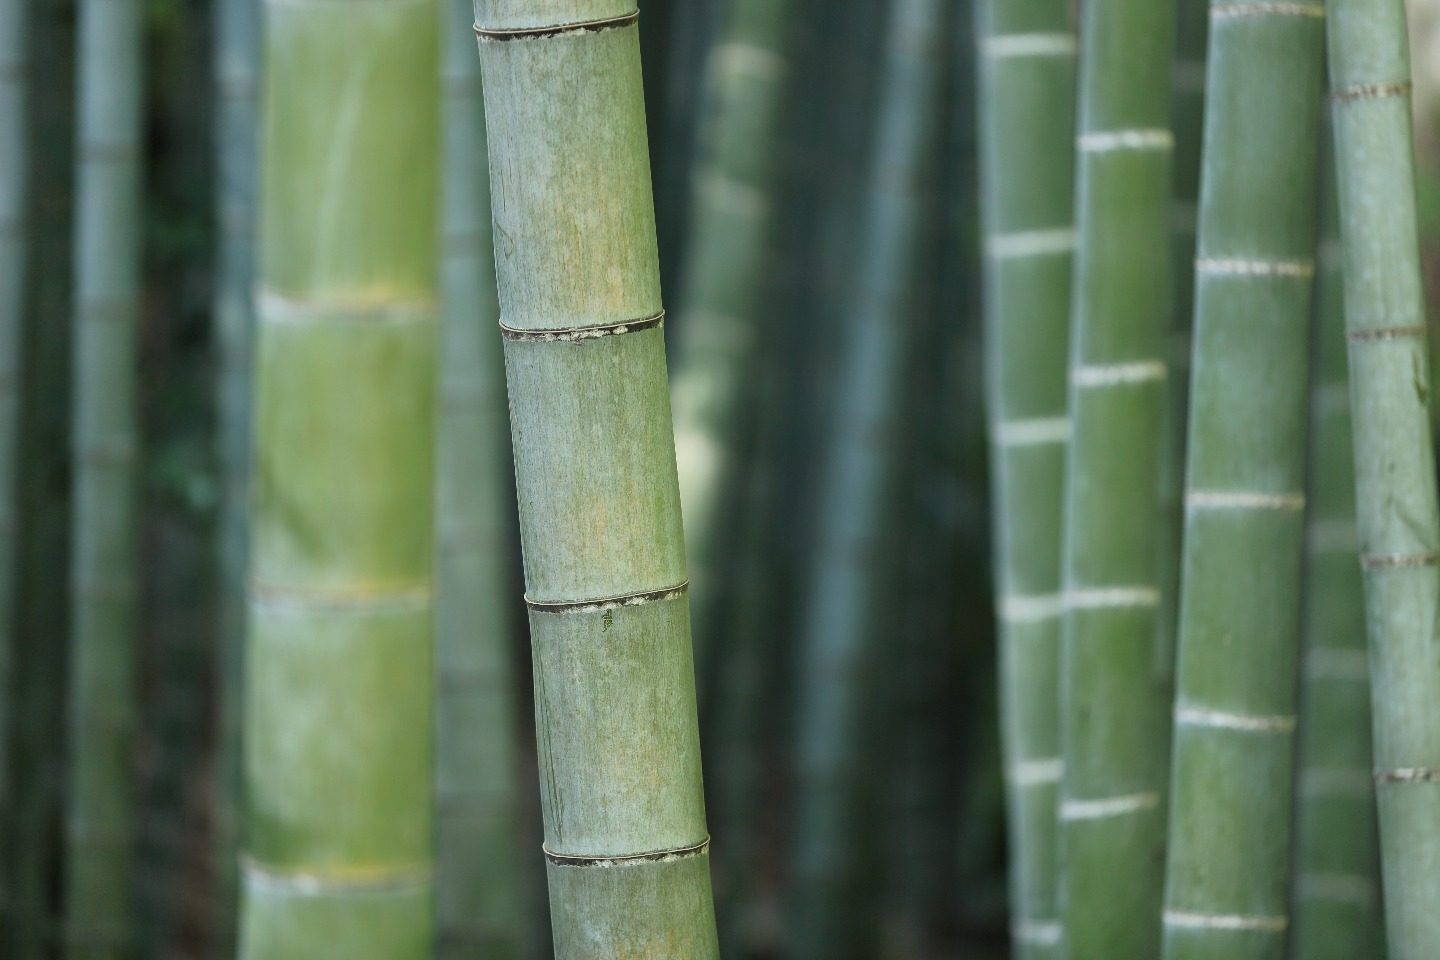 The Bamboo Theme